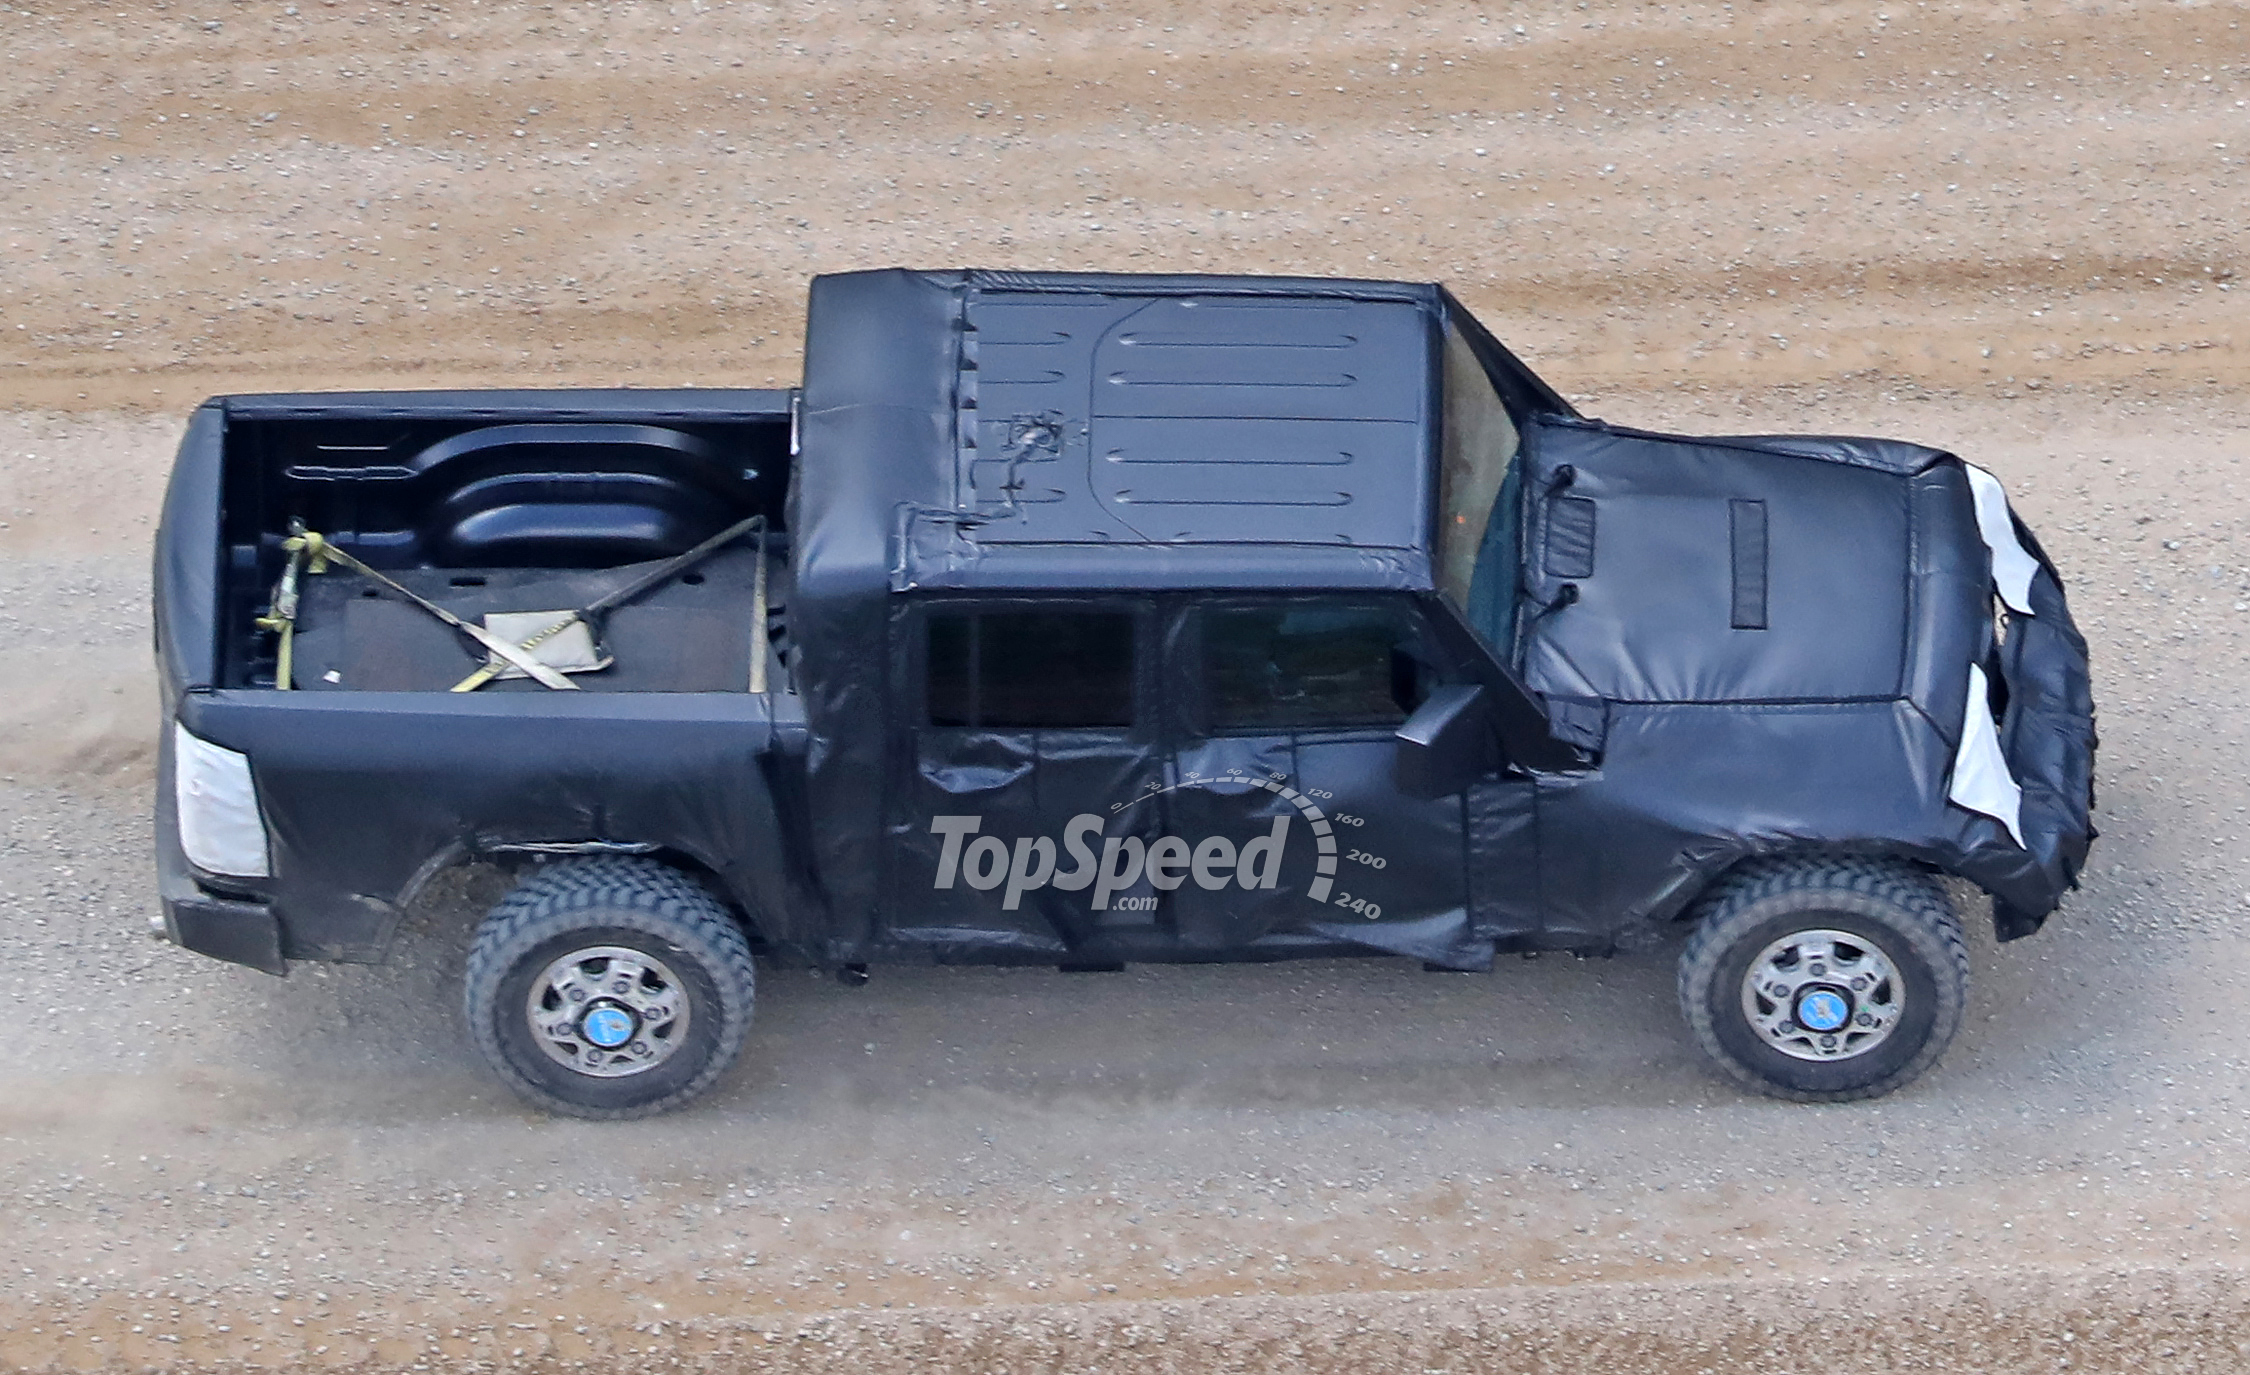 2018 Jeep Scrambler Top Speed Wrangler Jk Computer